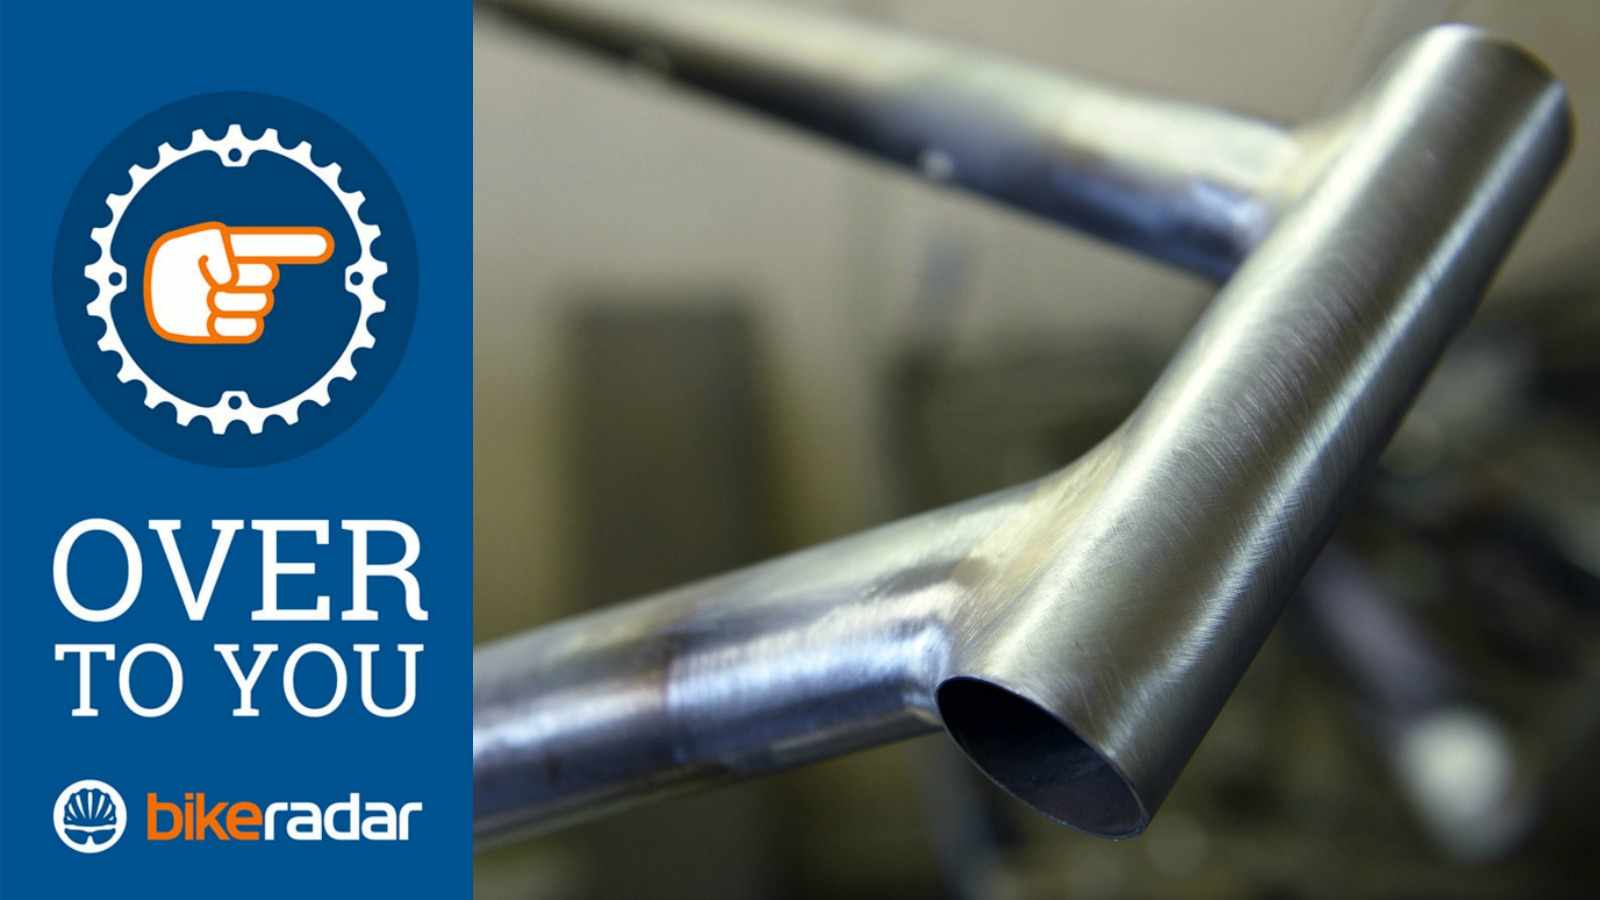 Is steel really the most authentic frame material?